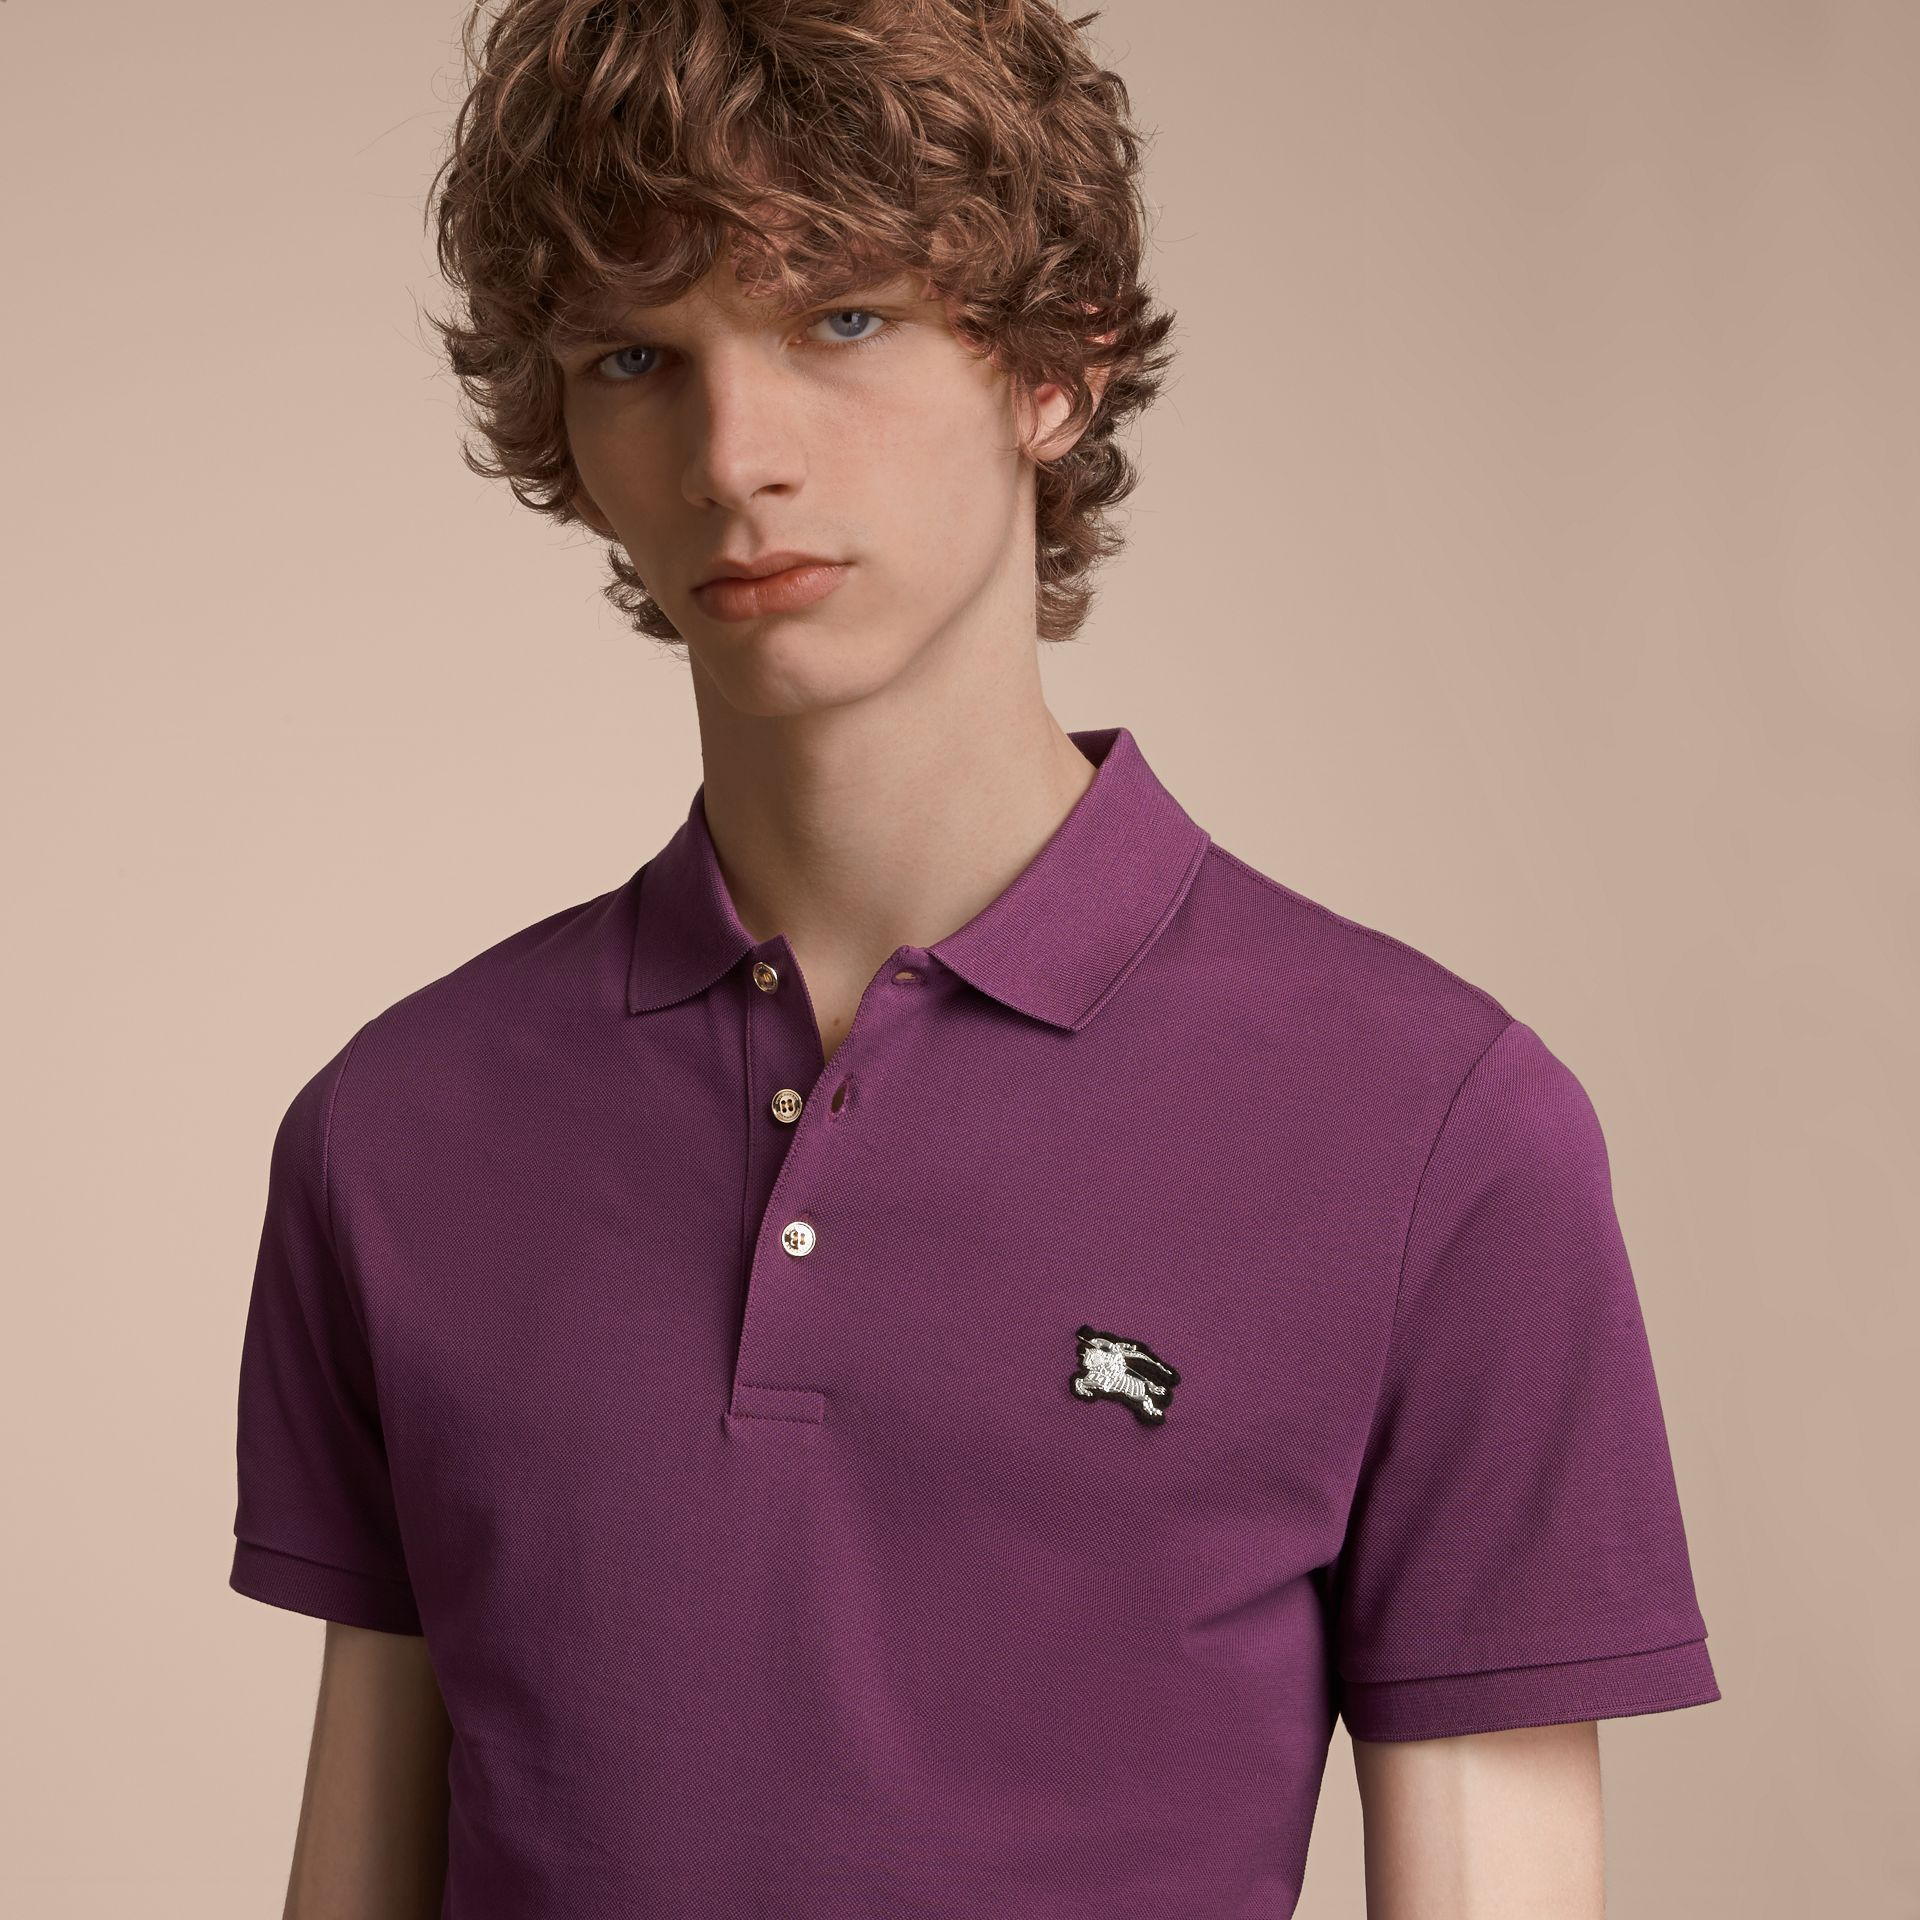 Cotton Piqué Polo Shirt in Heather - Men | Burberry - gallery image 5